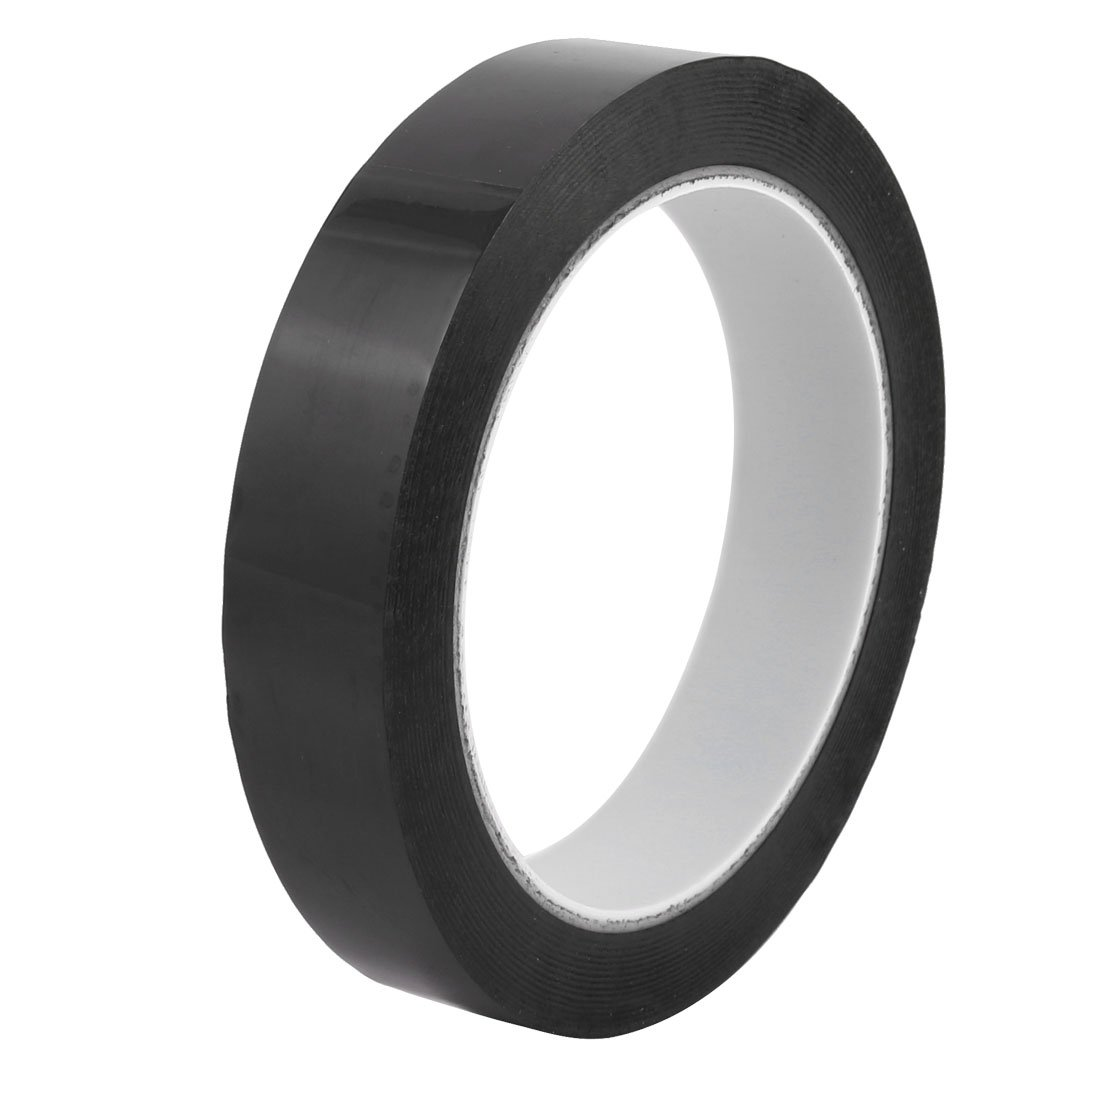 uxcell 25mm Width 66m Length Waterproof Black Single Sided Adhesive Marking Tape